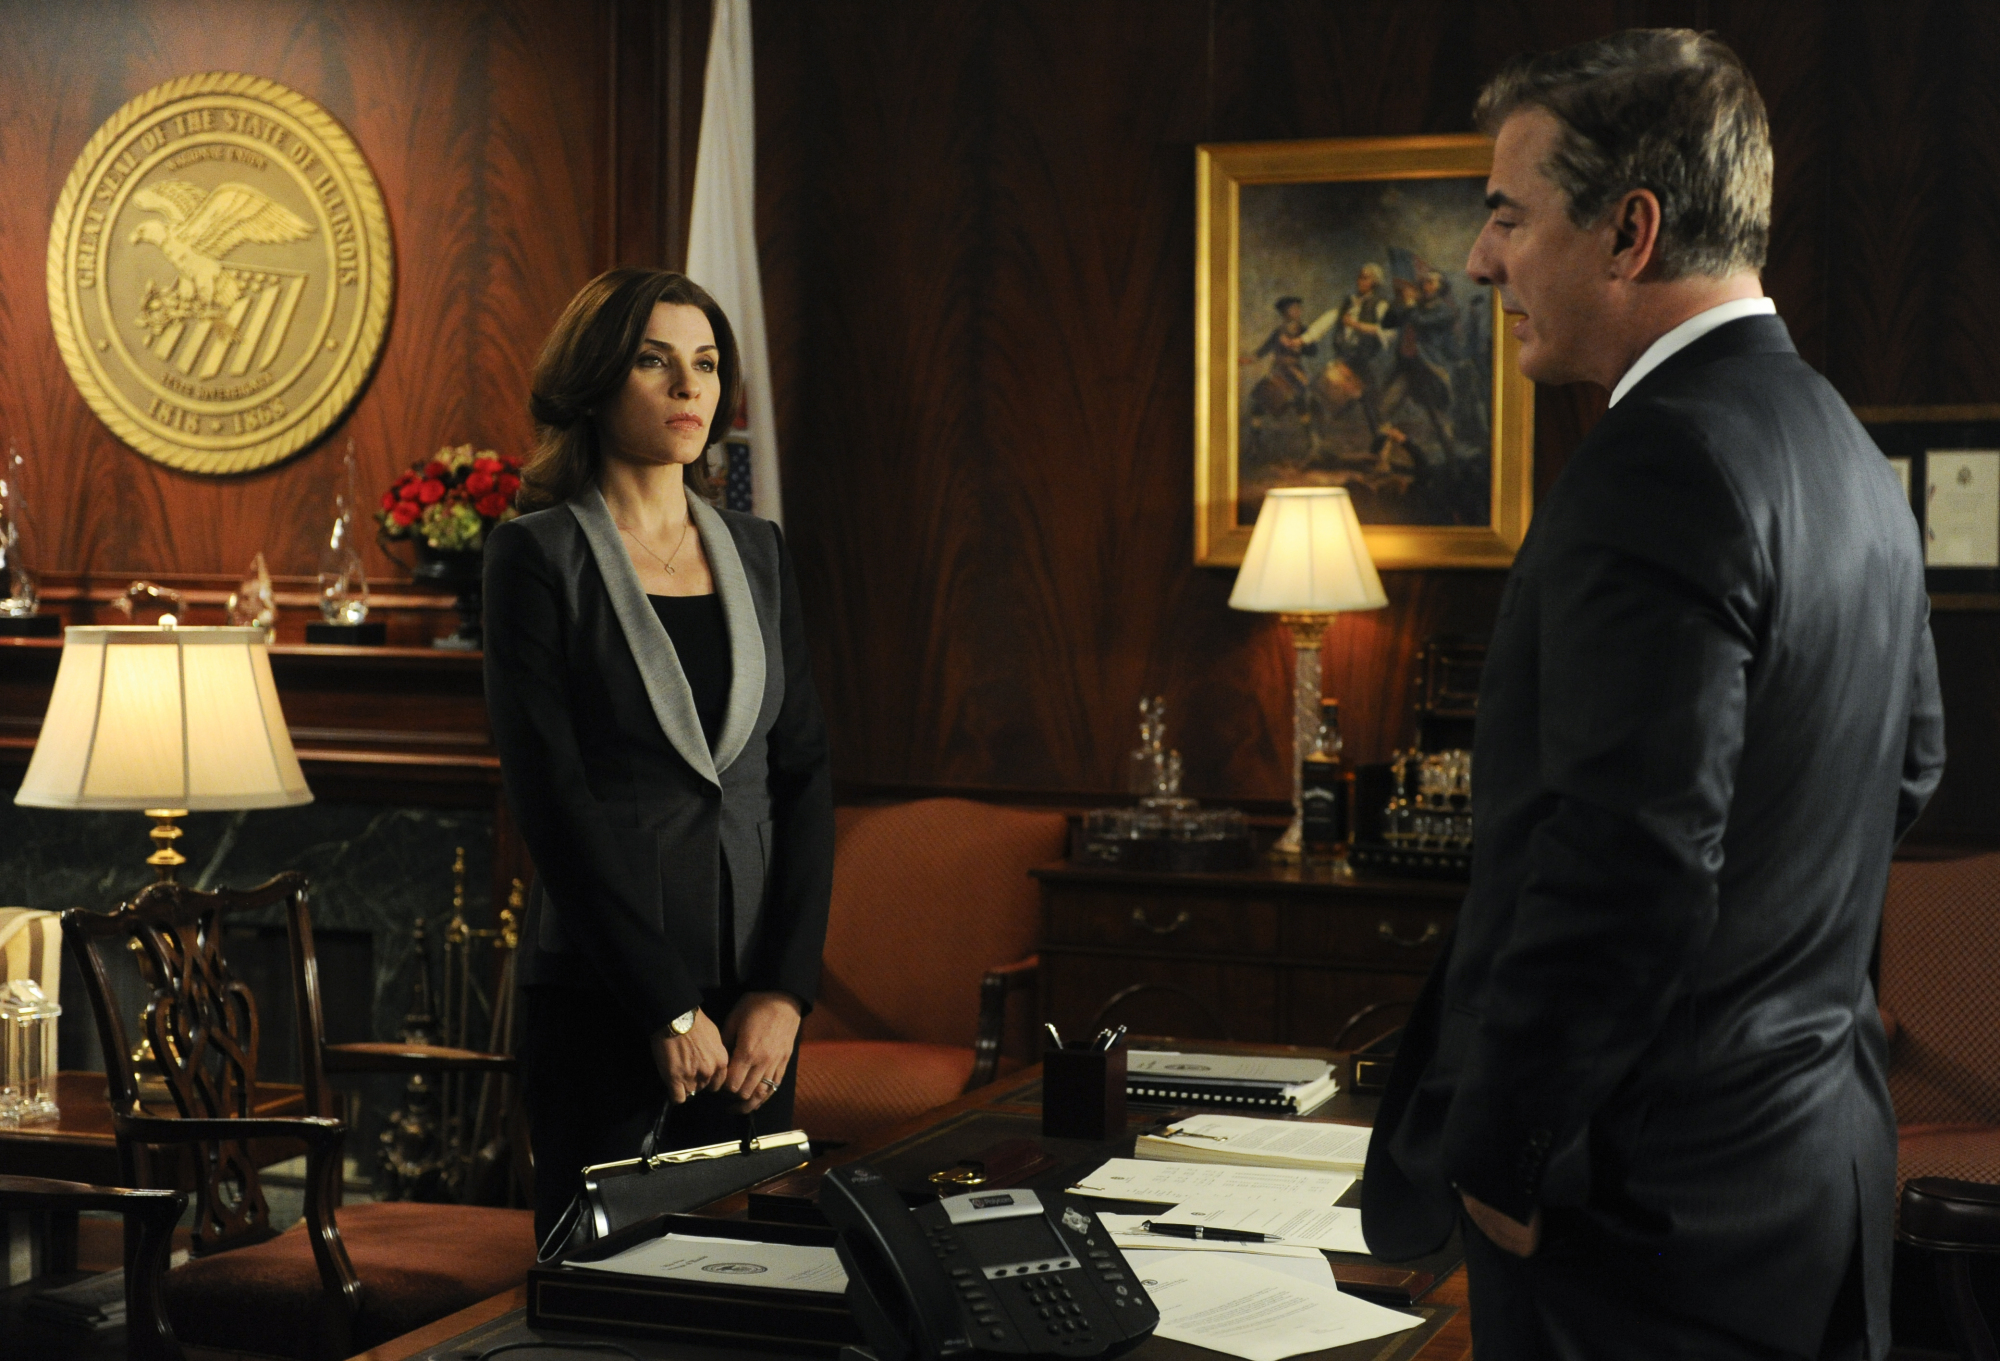 10. The Governor's Wife